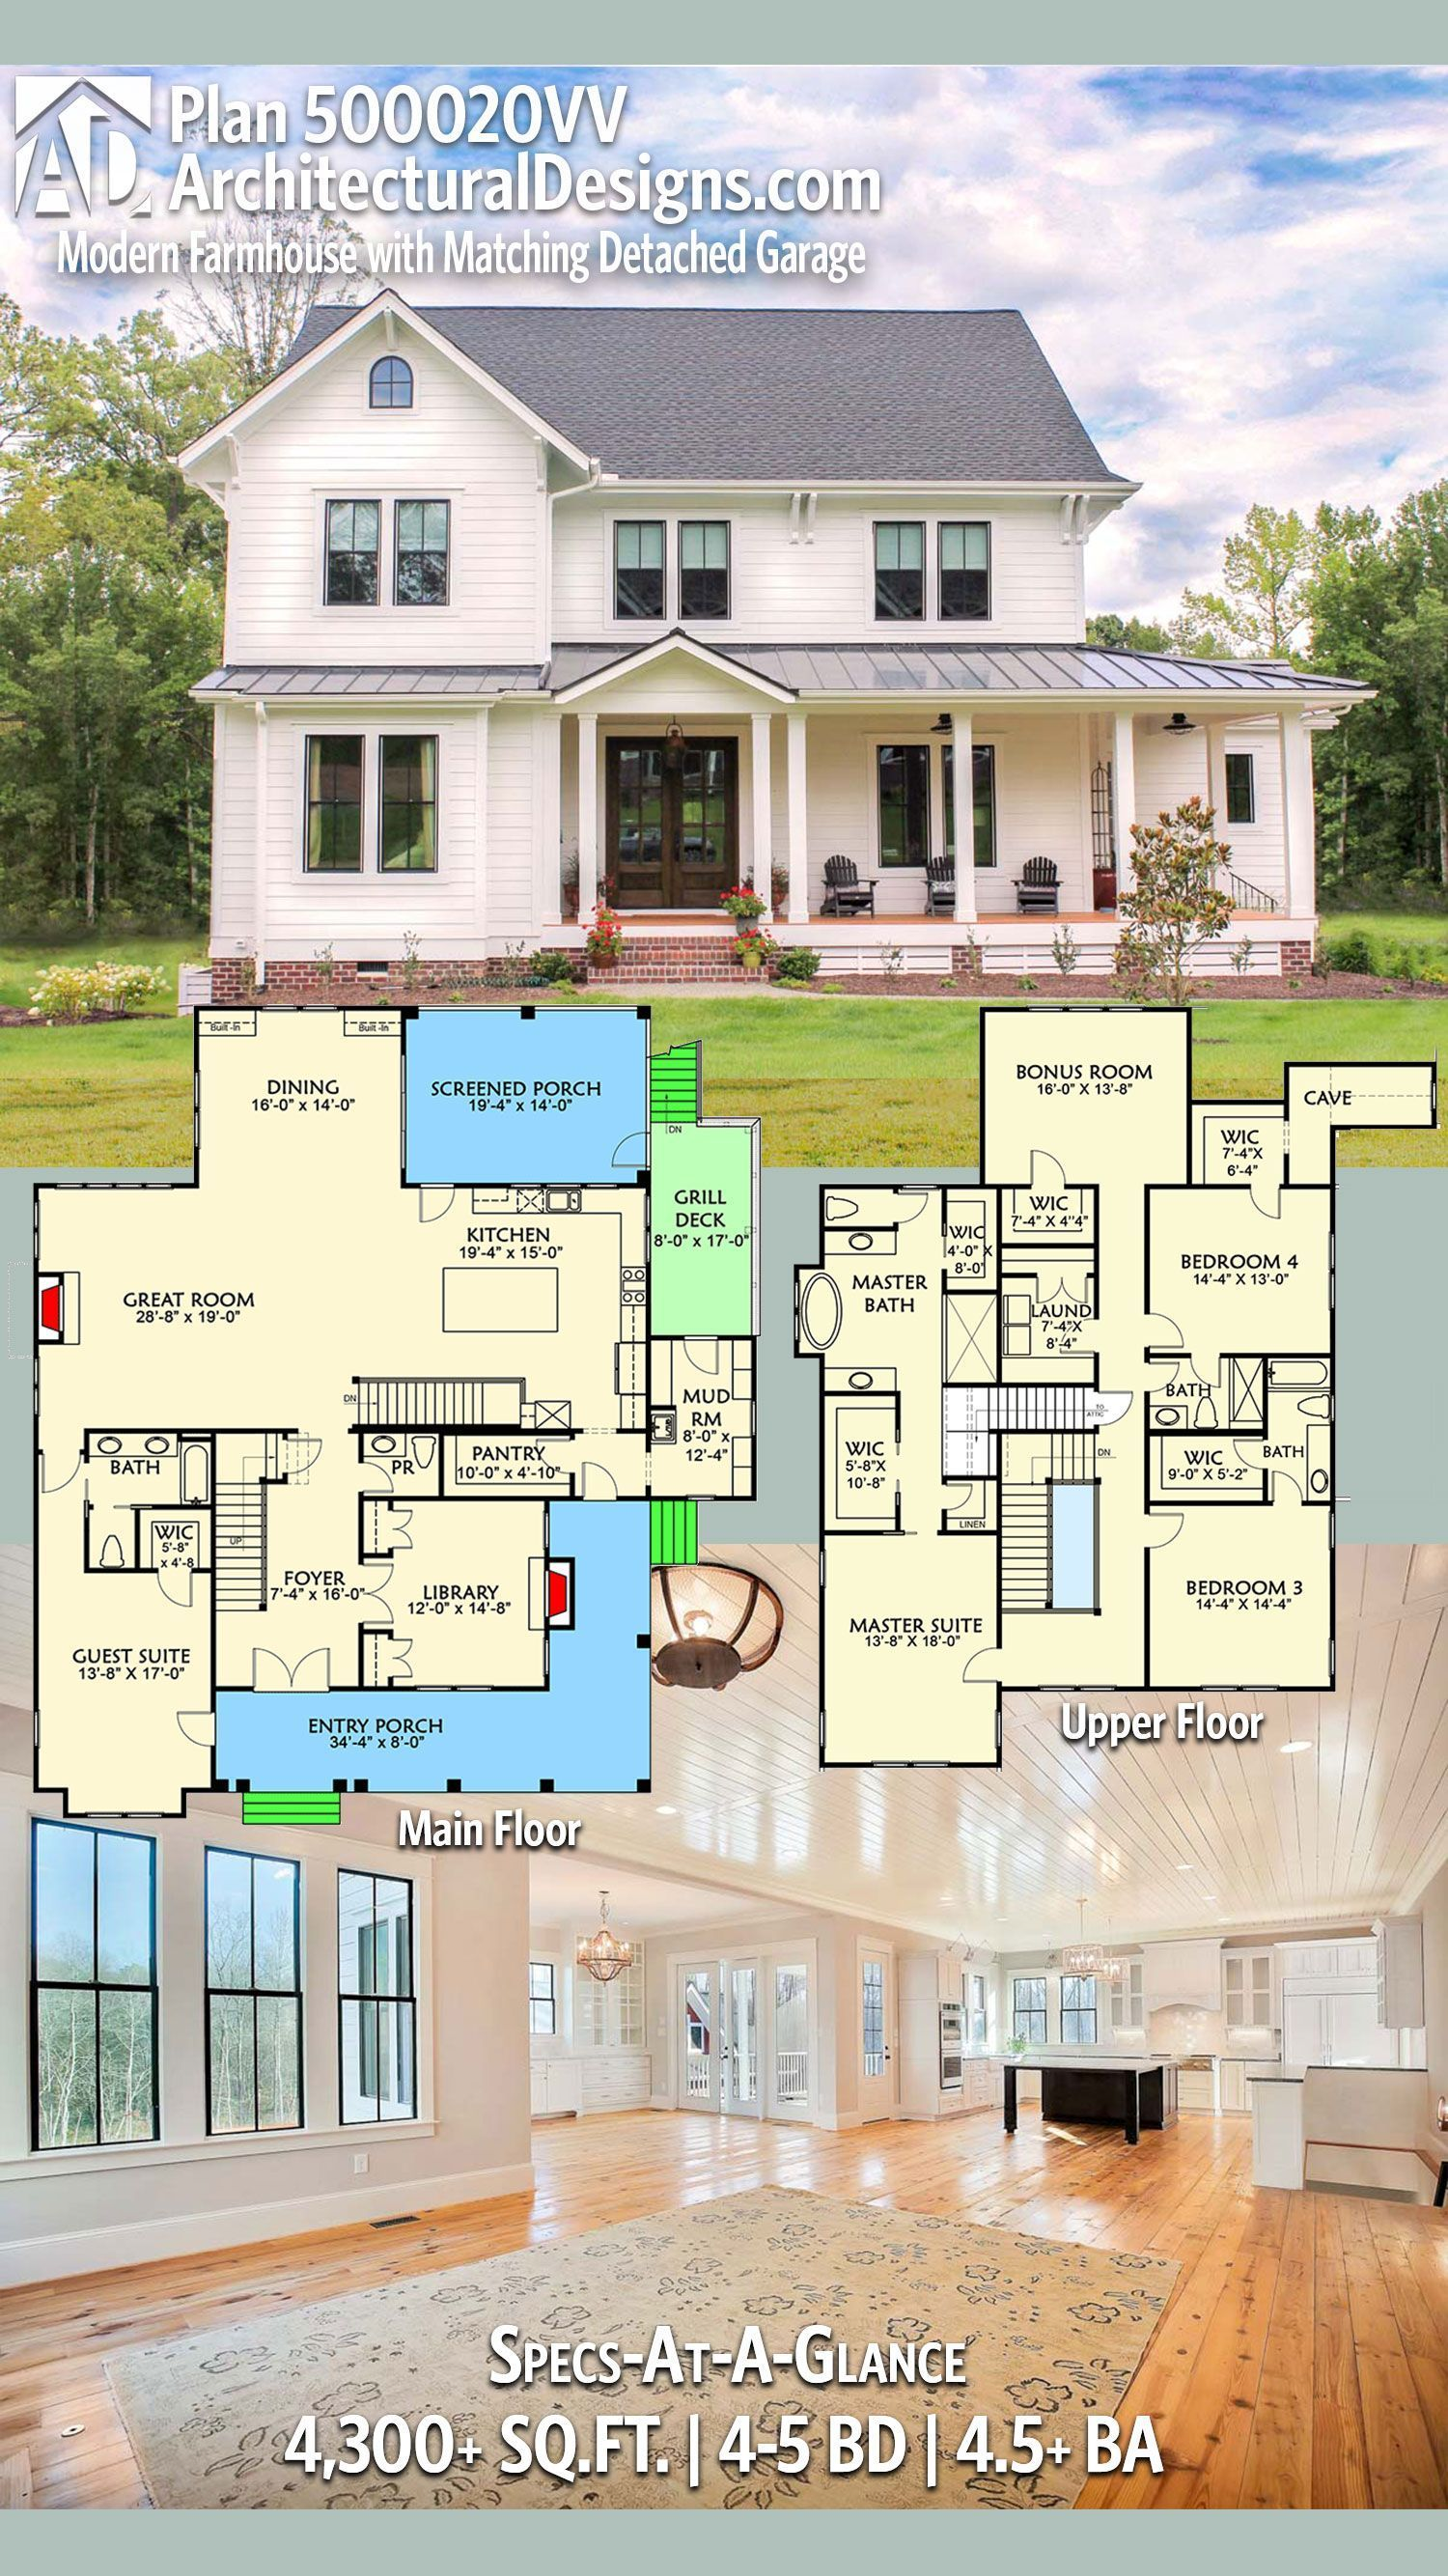 Plan 500020VV Modern Farmhouse with Matching Detached